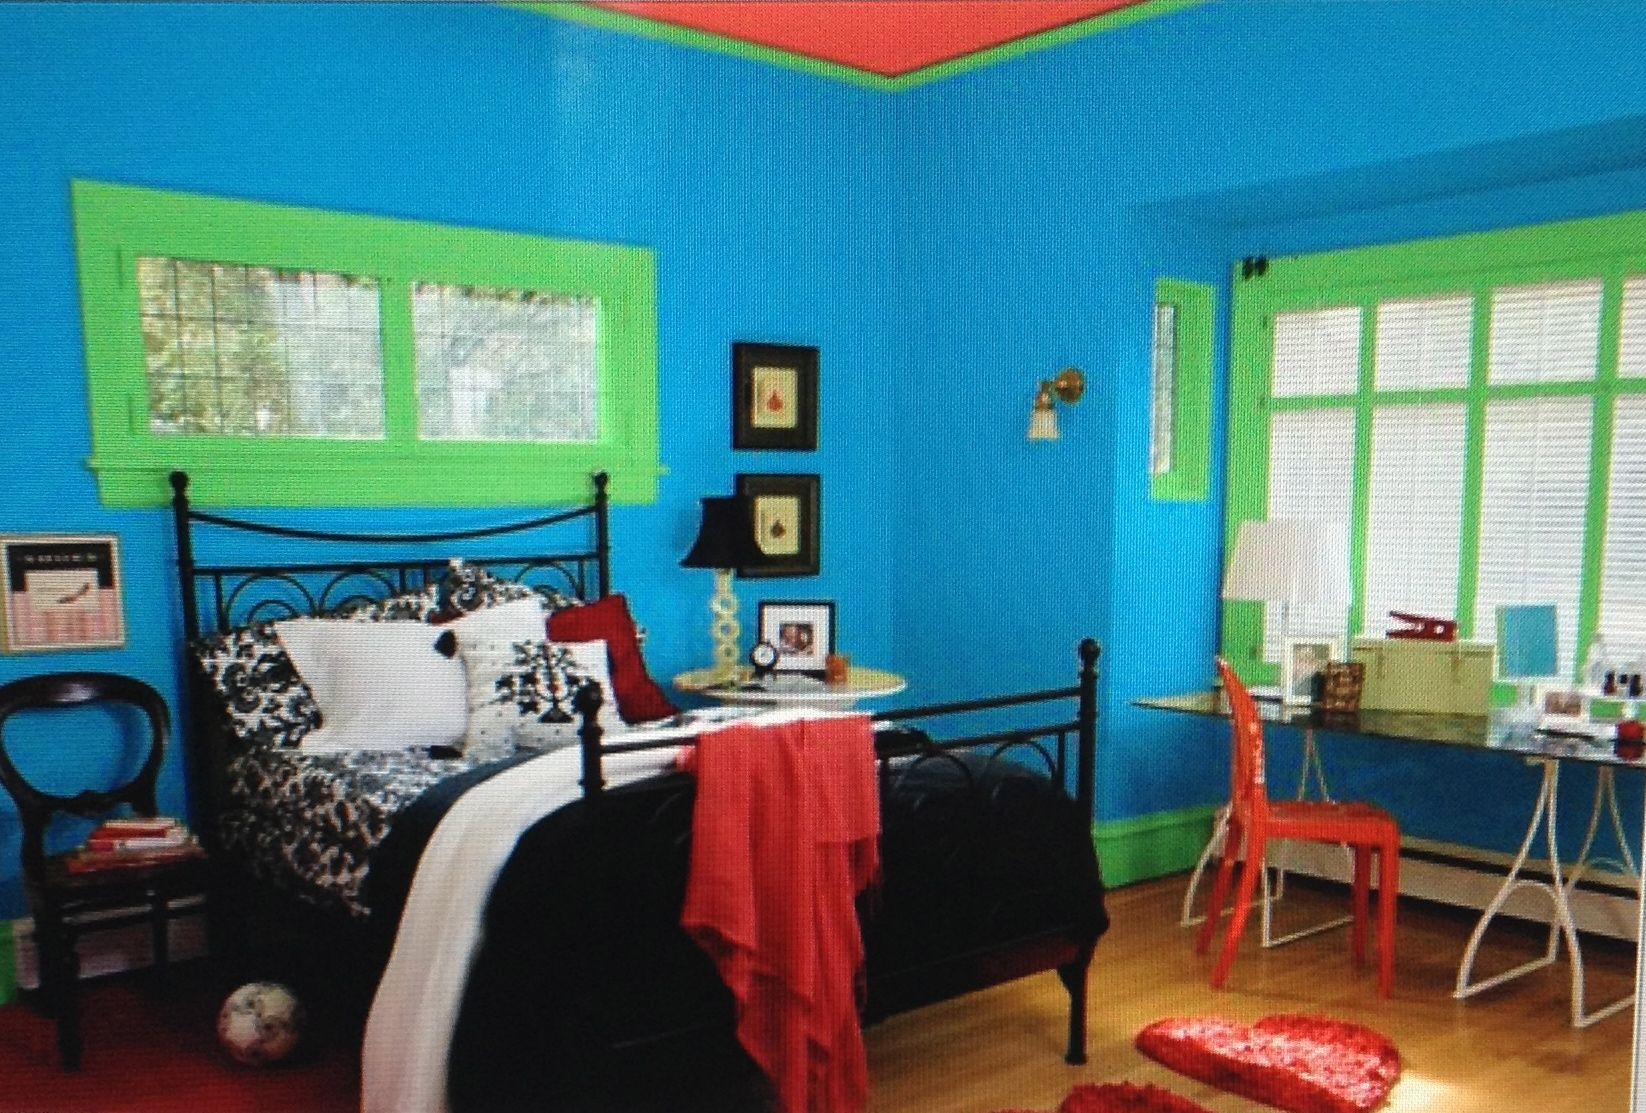 The Color Scheme Of This Double Complementary Bedroom Is Blue Green Orange And